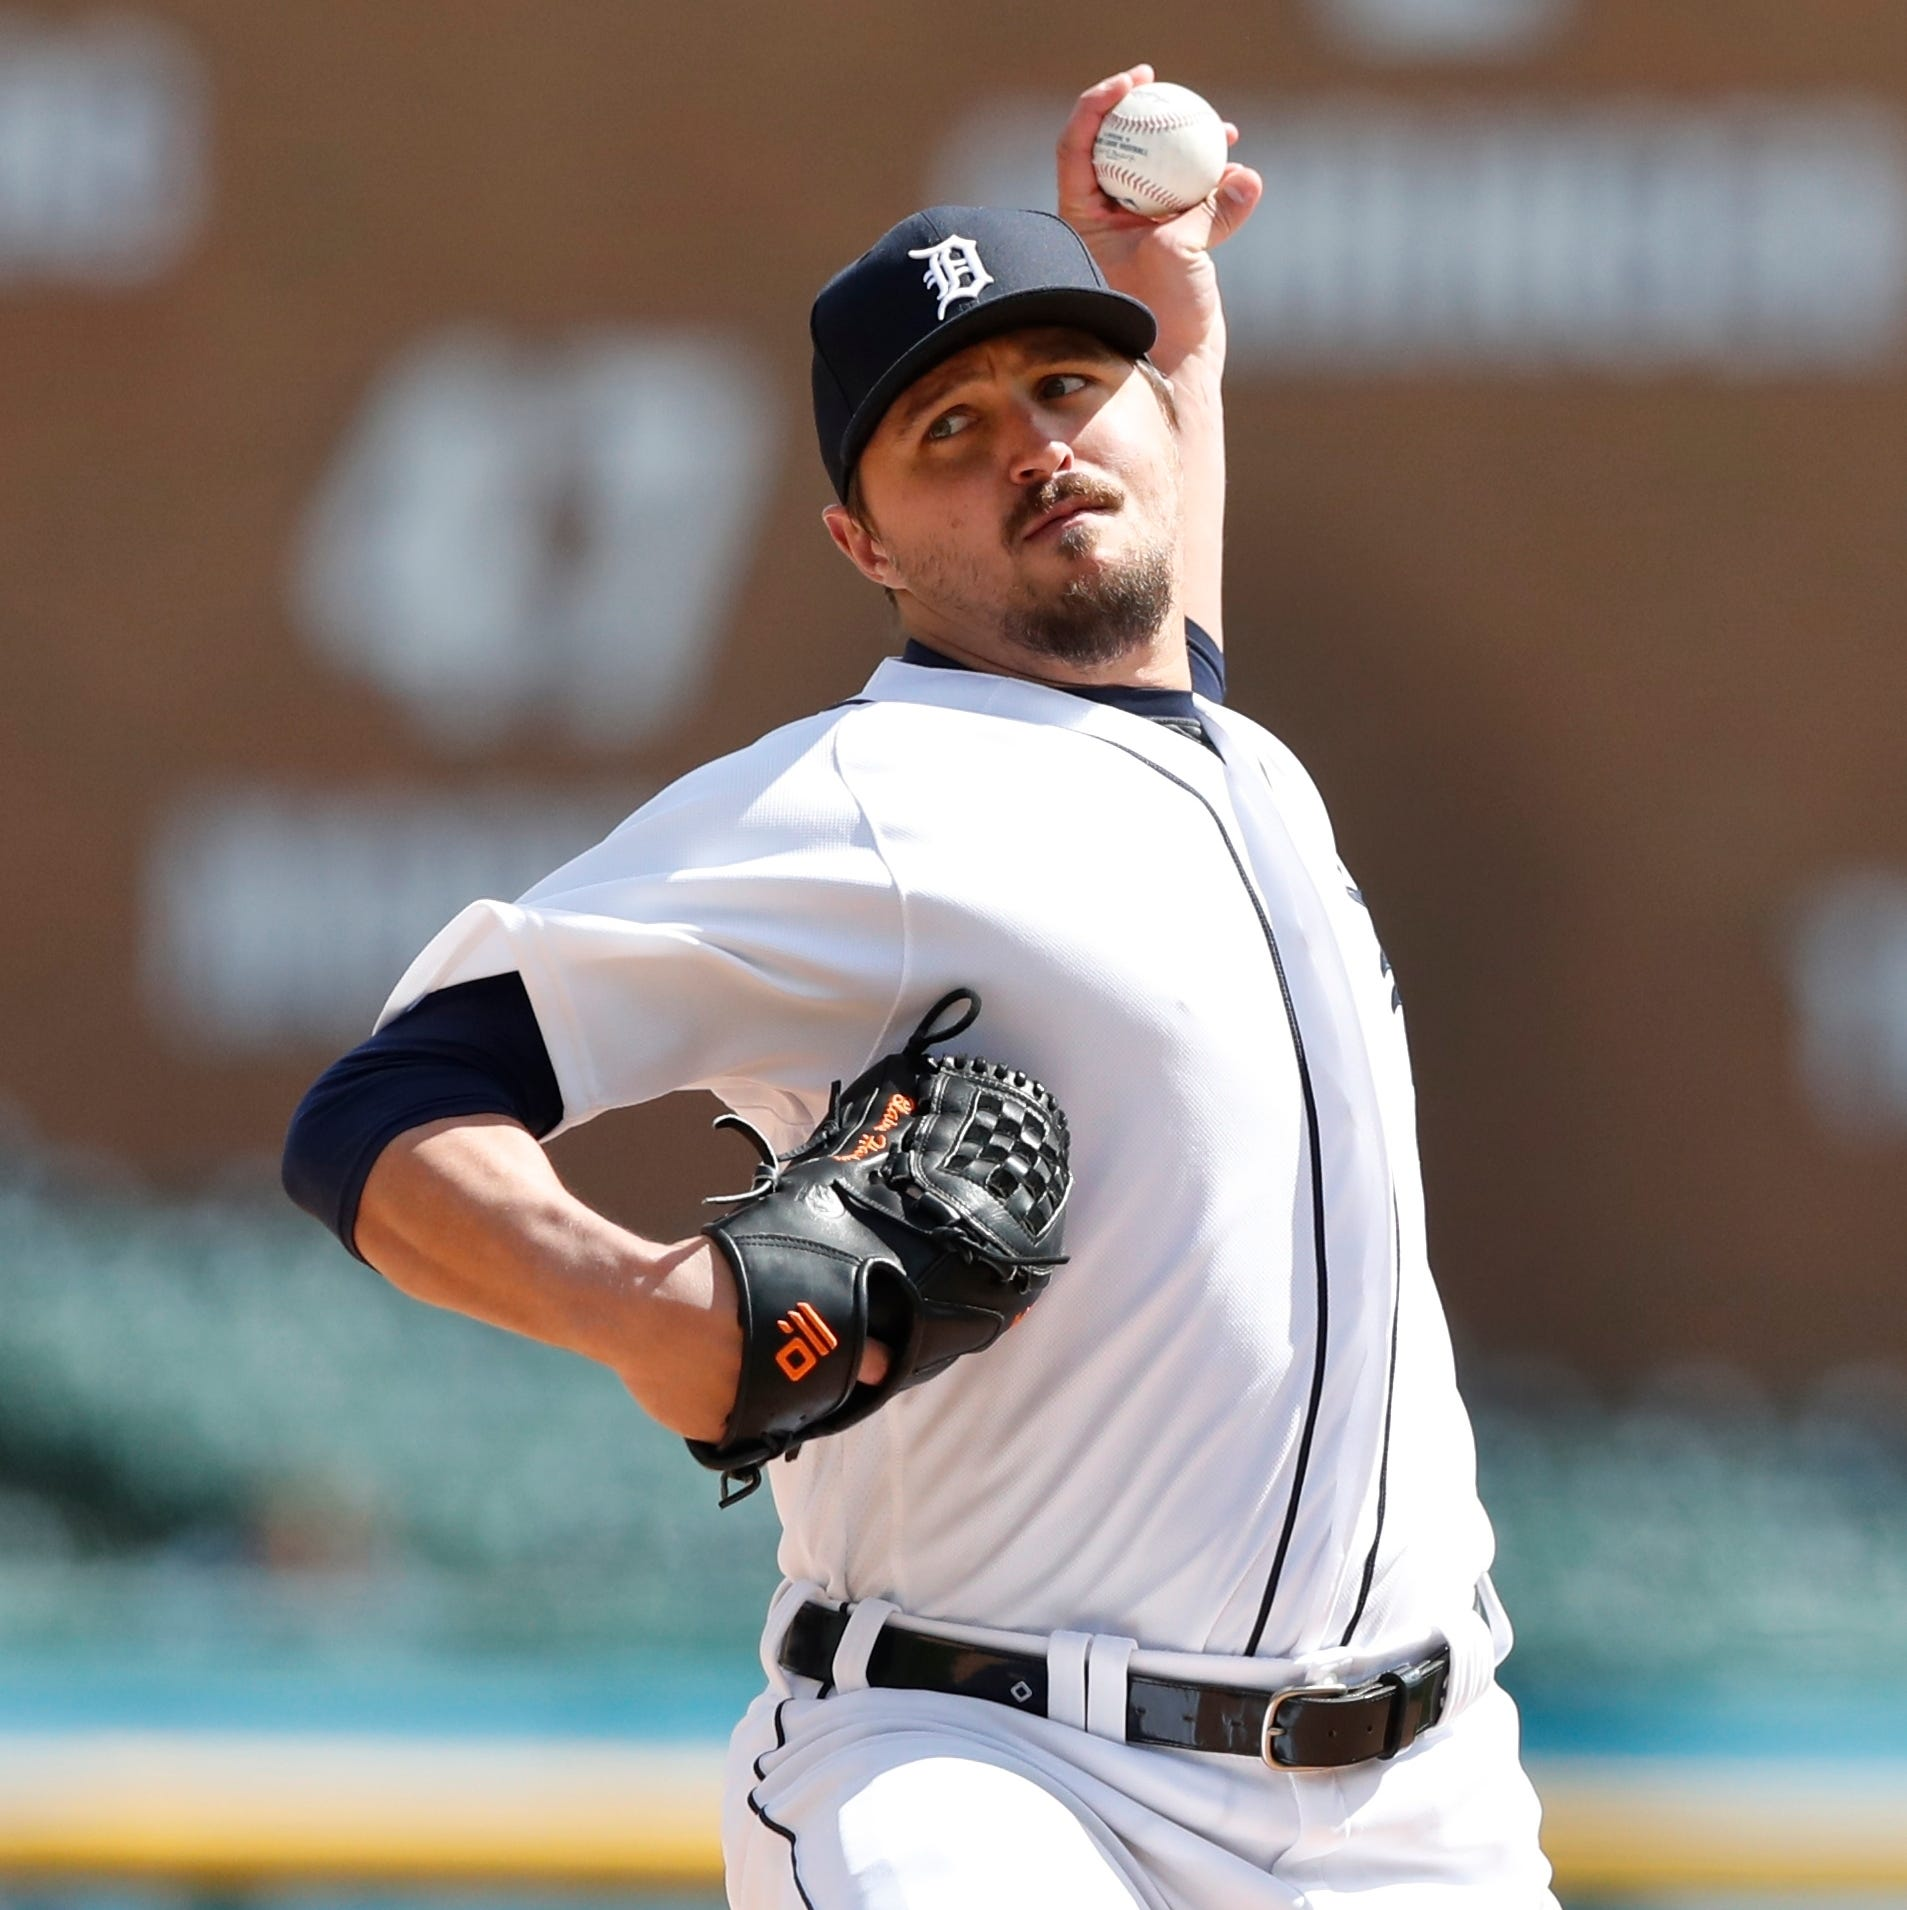 Hardy is back with Tigers, but battling tendinitis may be his new normal